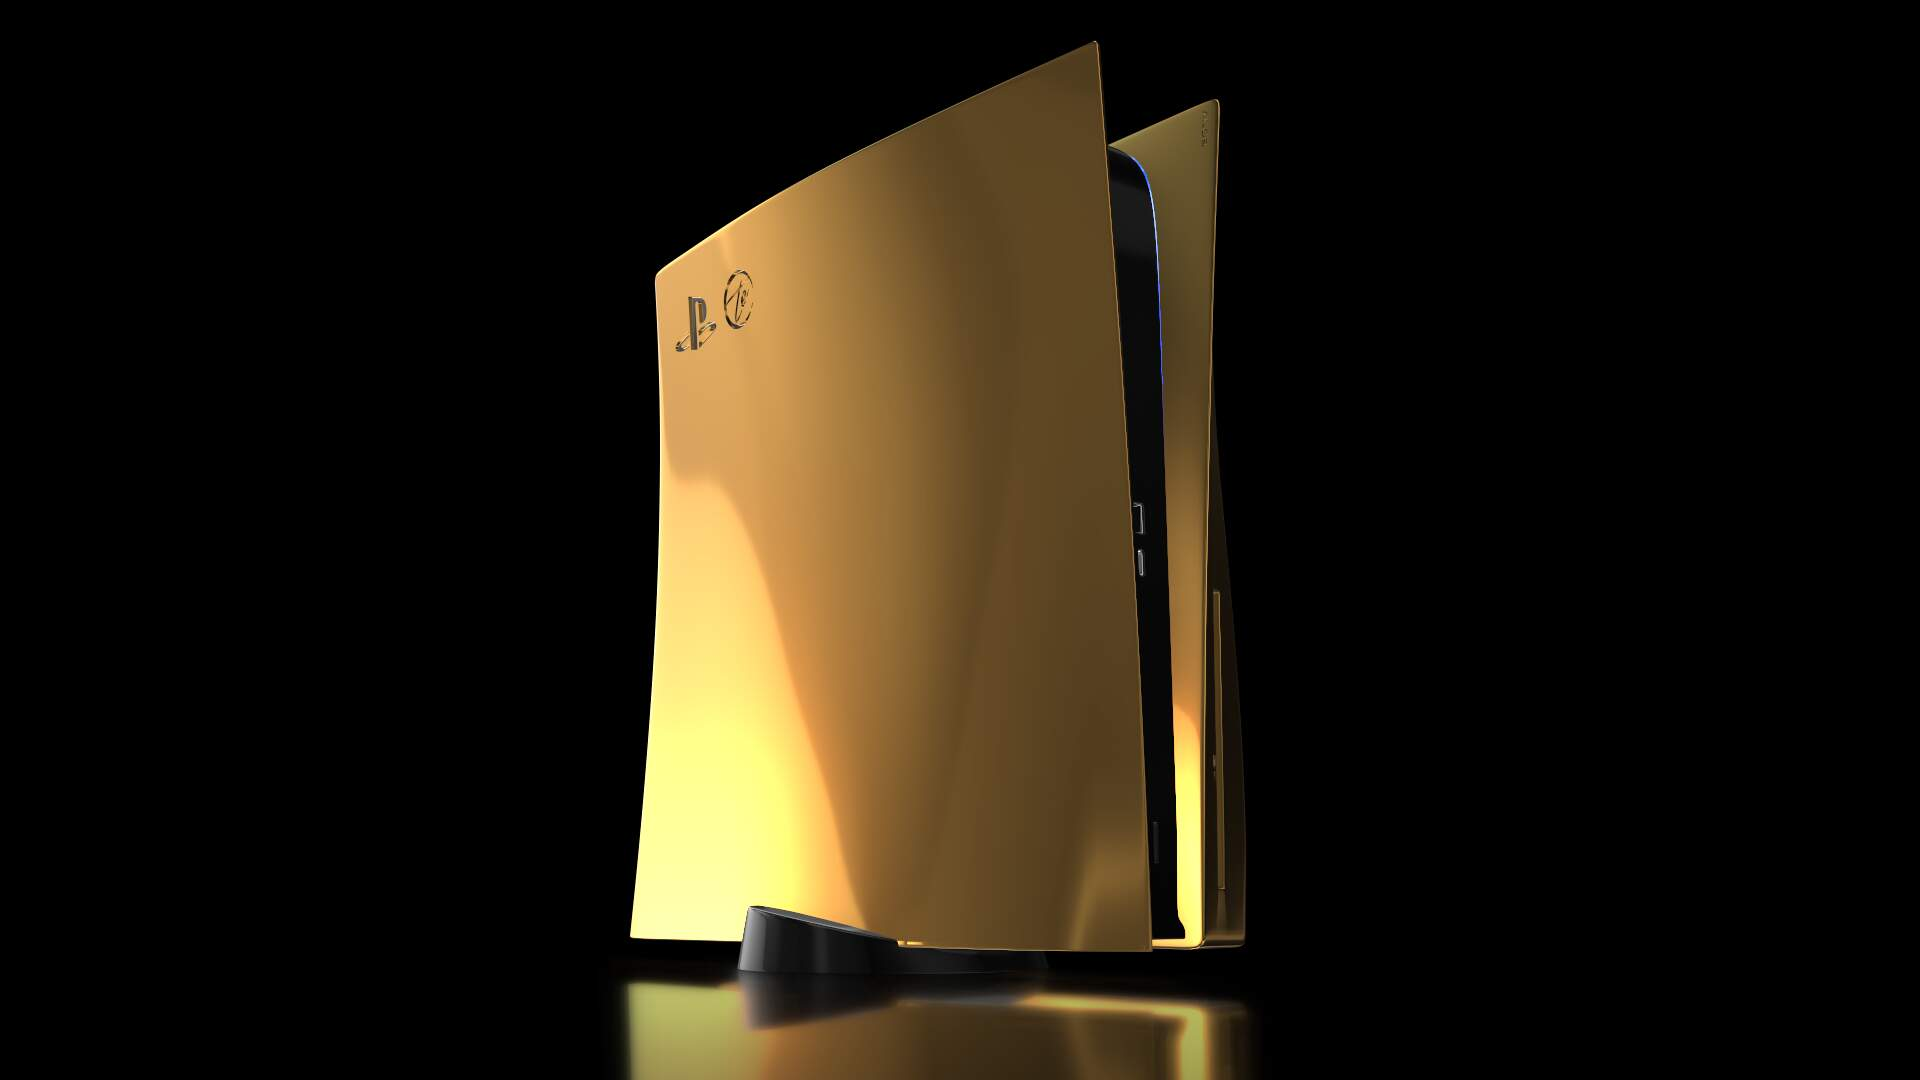 PS5 Pre-Orders Are Starting Soon… If You Want a Console Covered in Gold